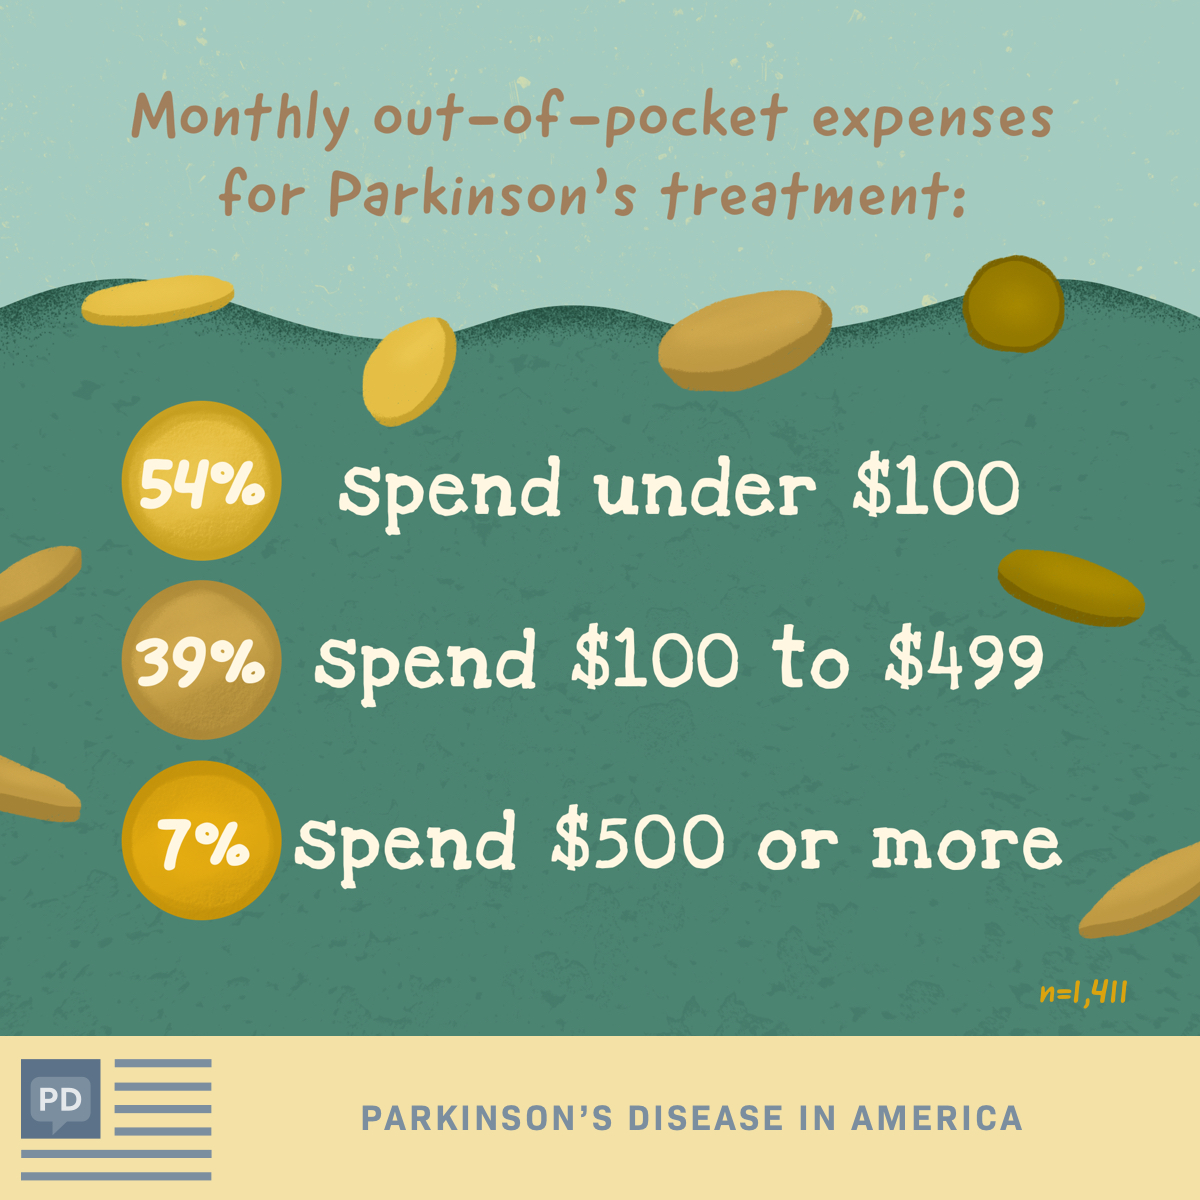 Average monthly out-of-pocket spend for Parkinson's disease treatment